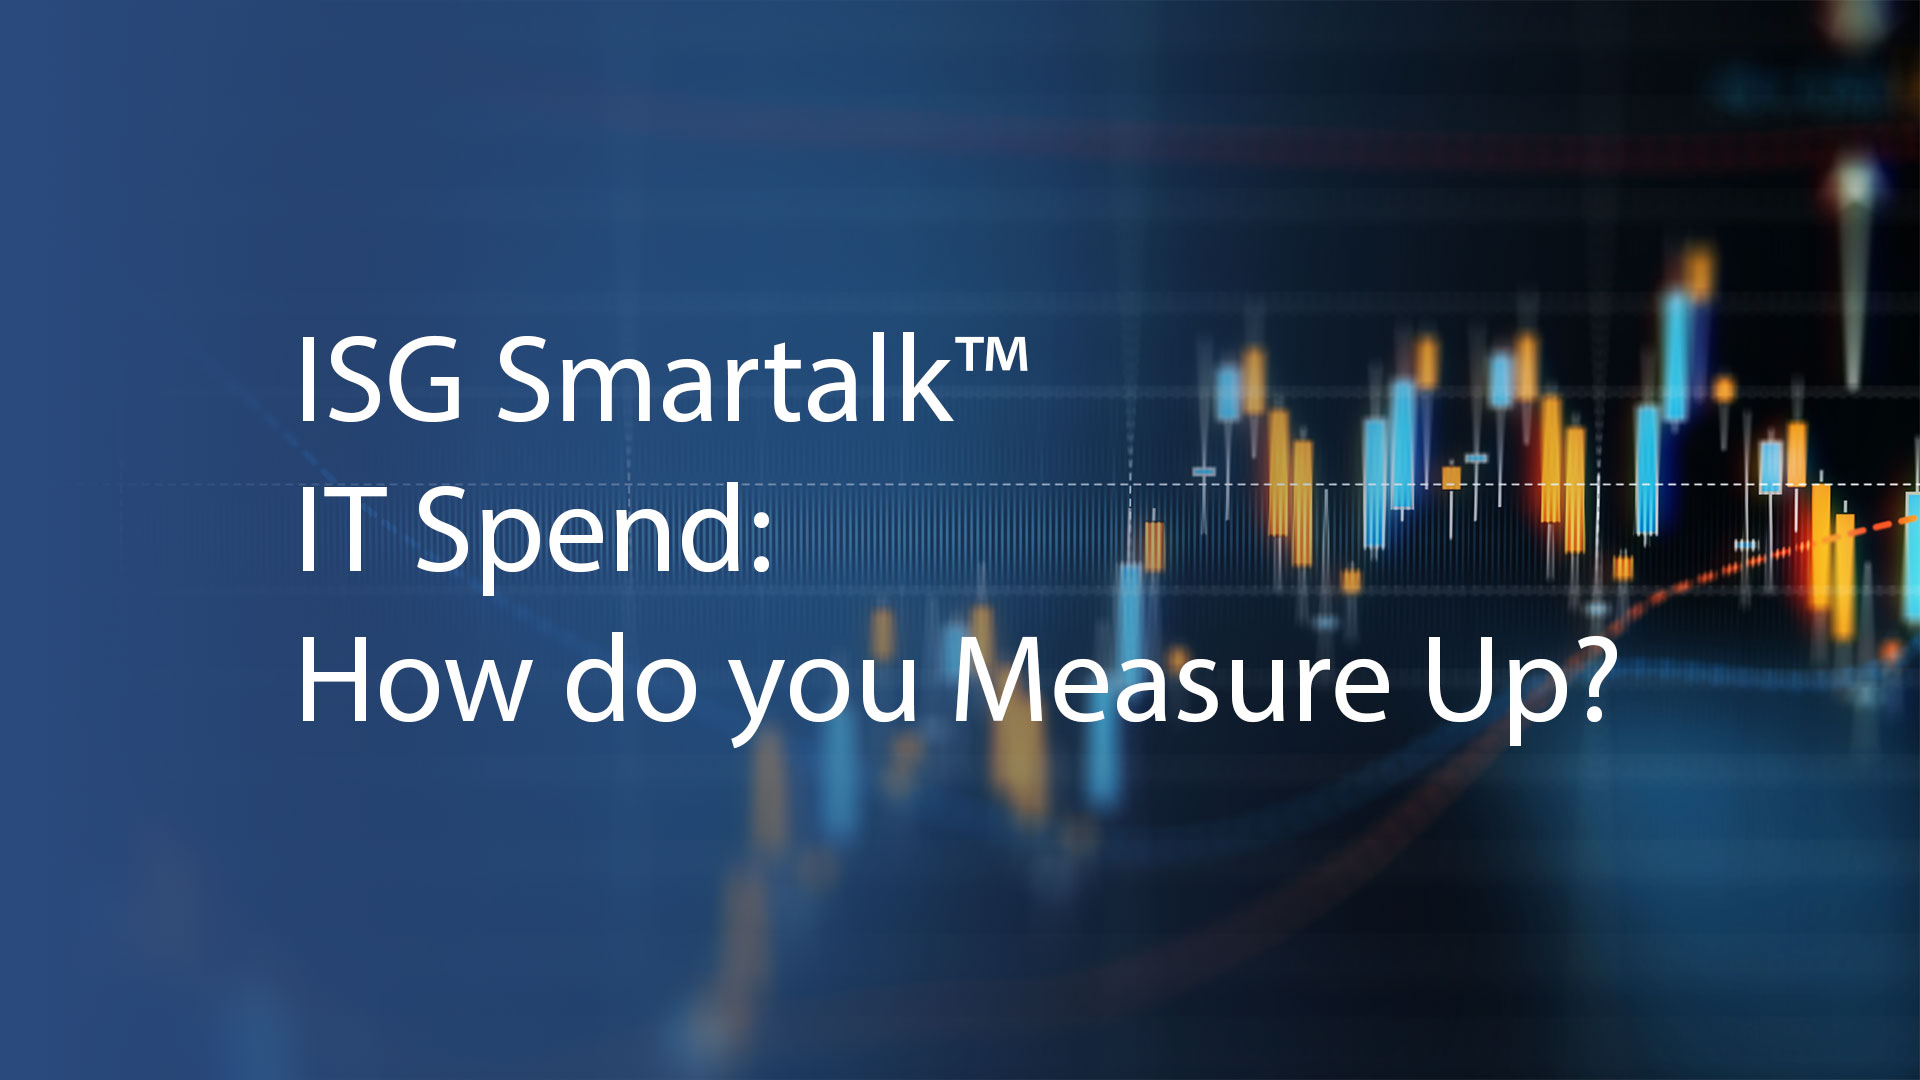 IT-Spend-How-Do-You-Measure-Up